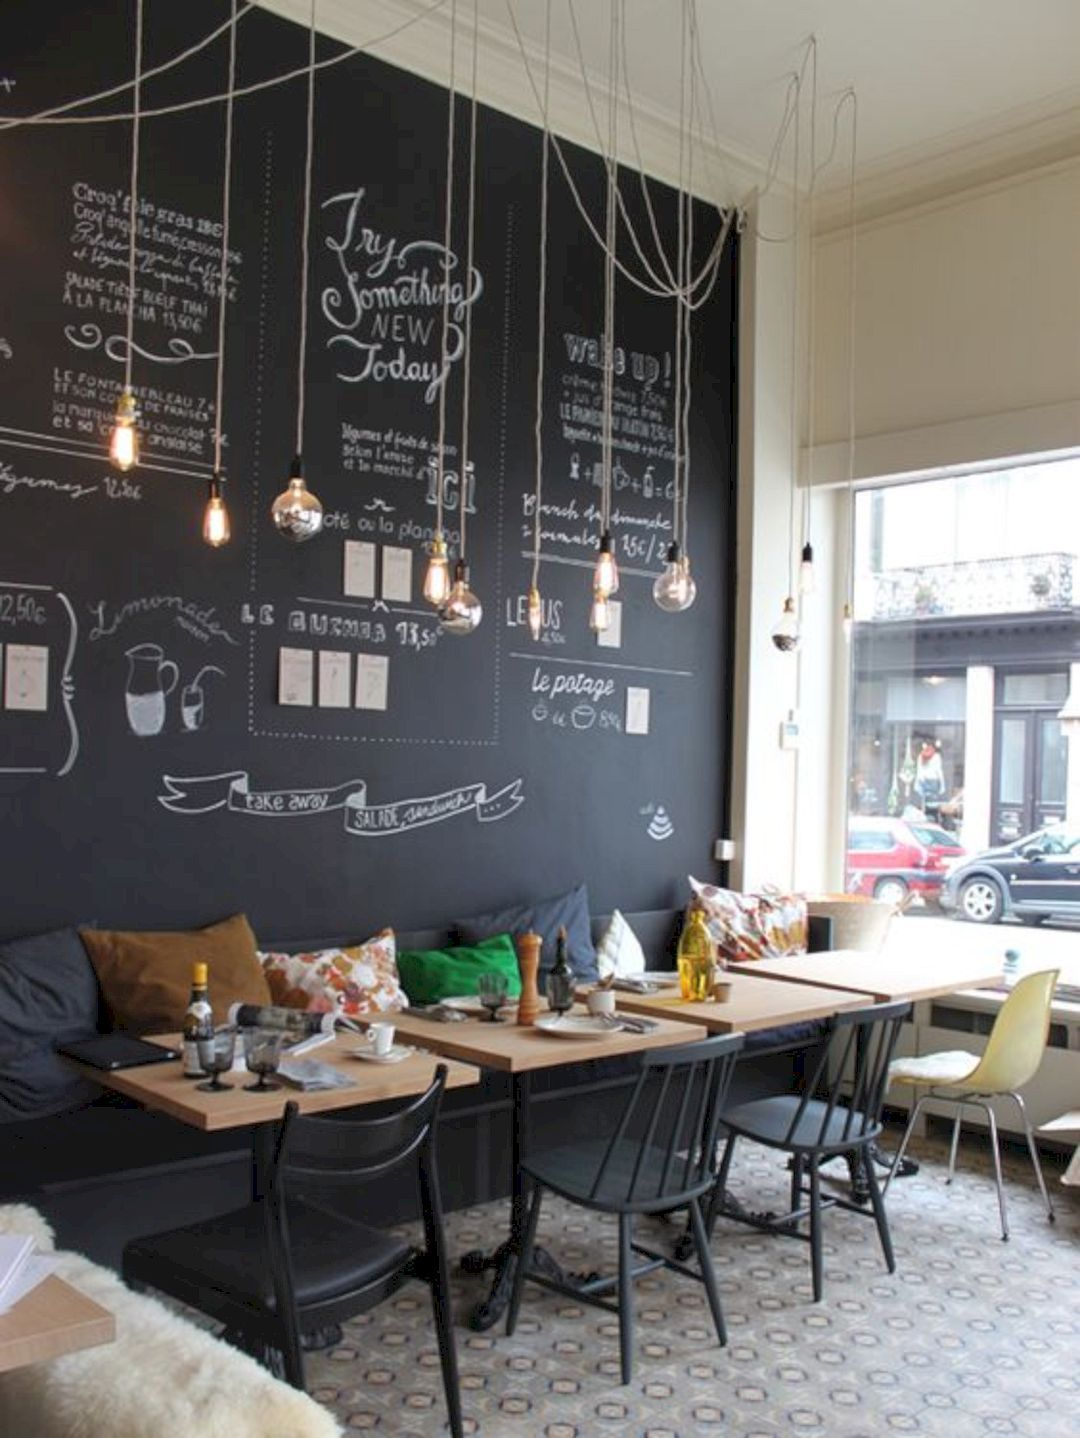 15 Cafe Shop Interior Design Ideas To Lure Customers 15 Cafe